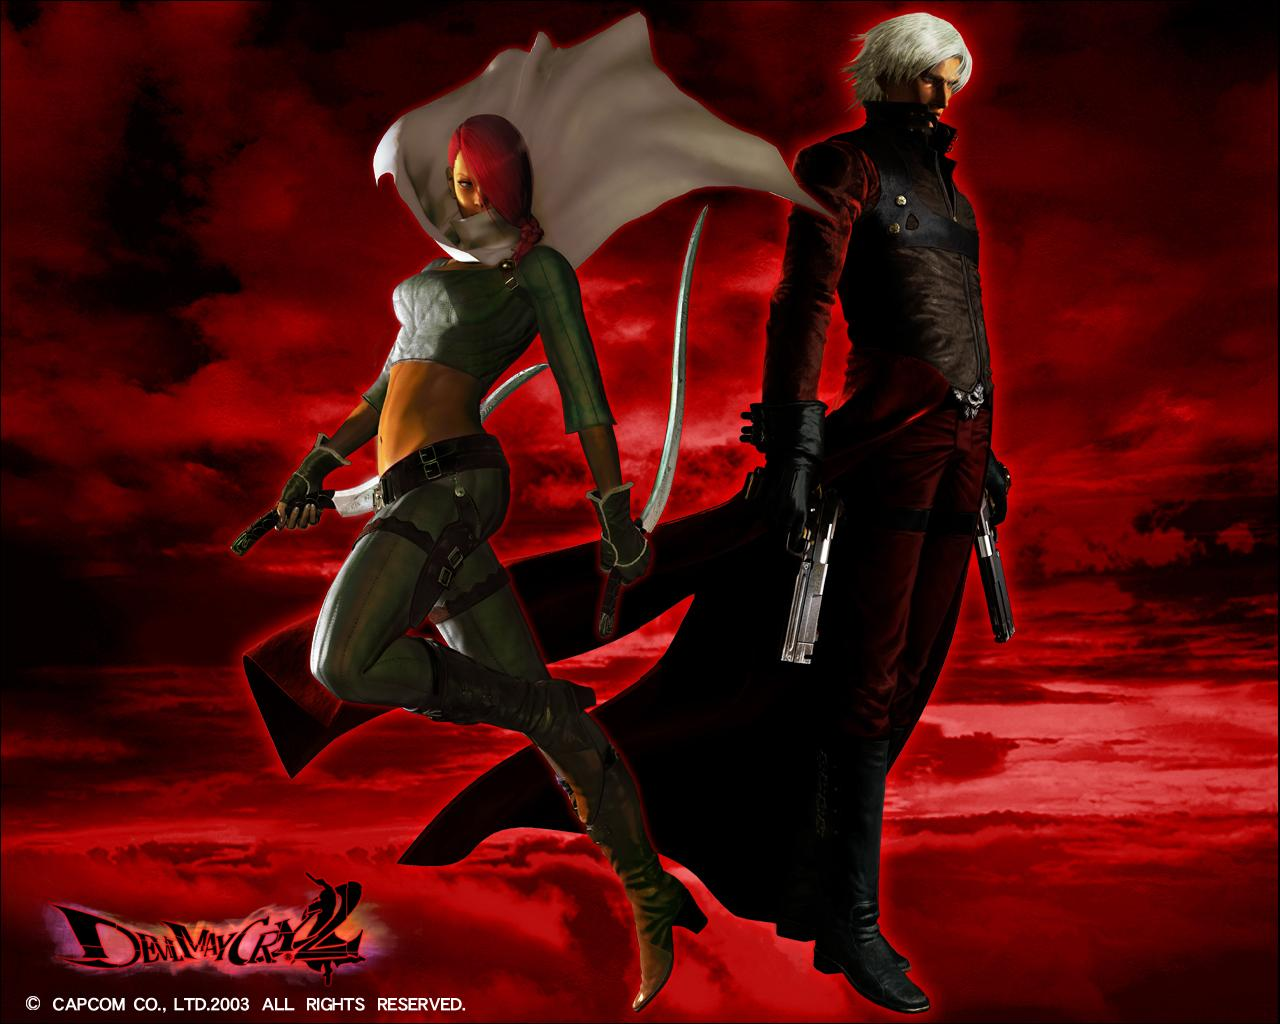 Wallpapers Dante Devil May Cry Devil May Cry 2 Games